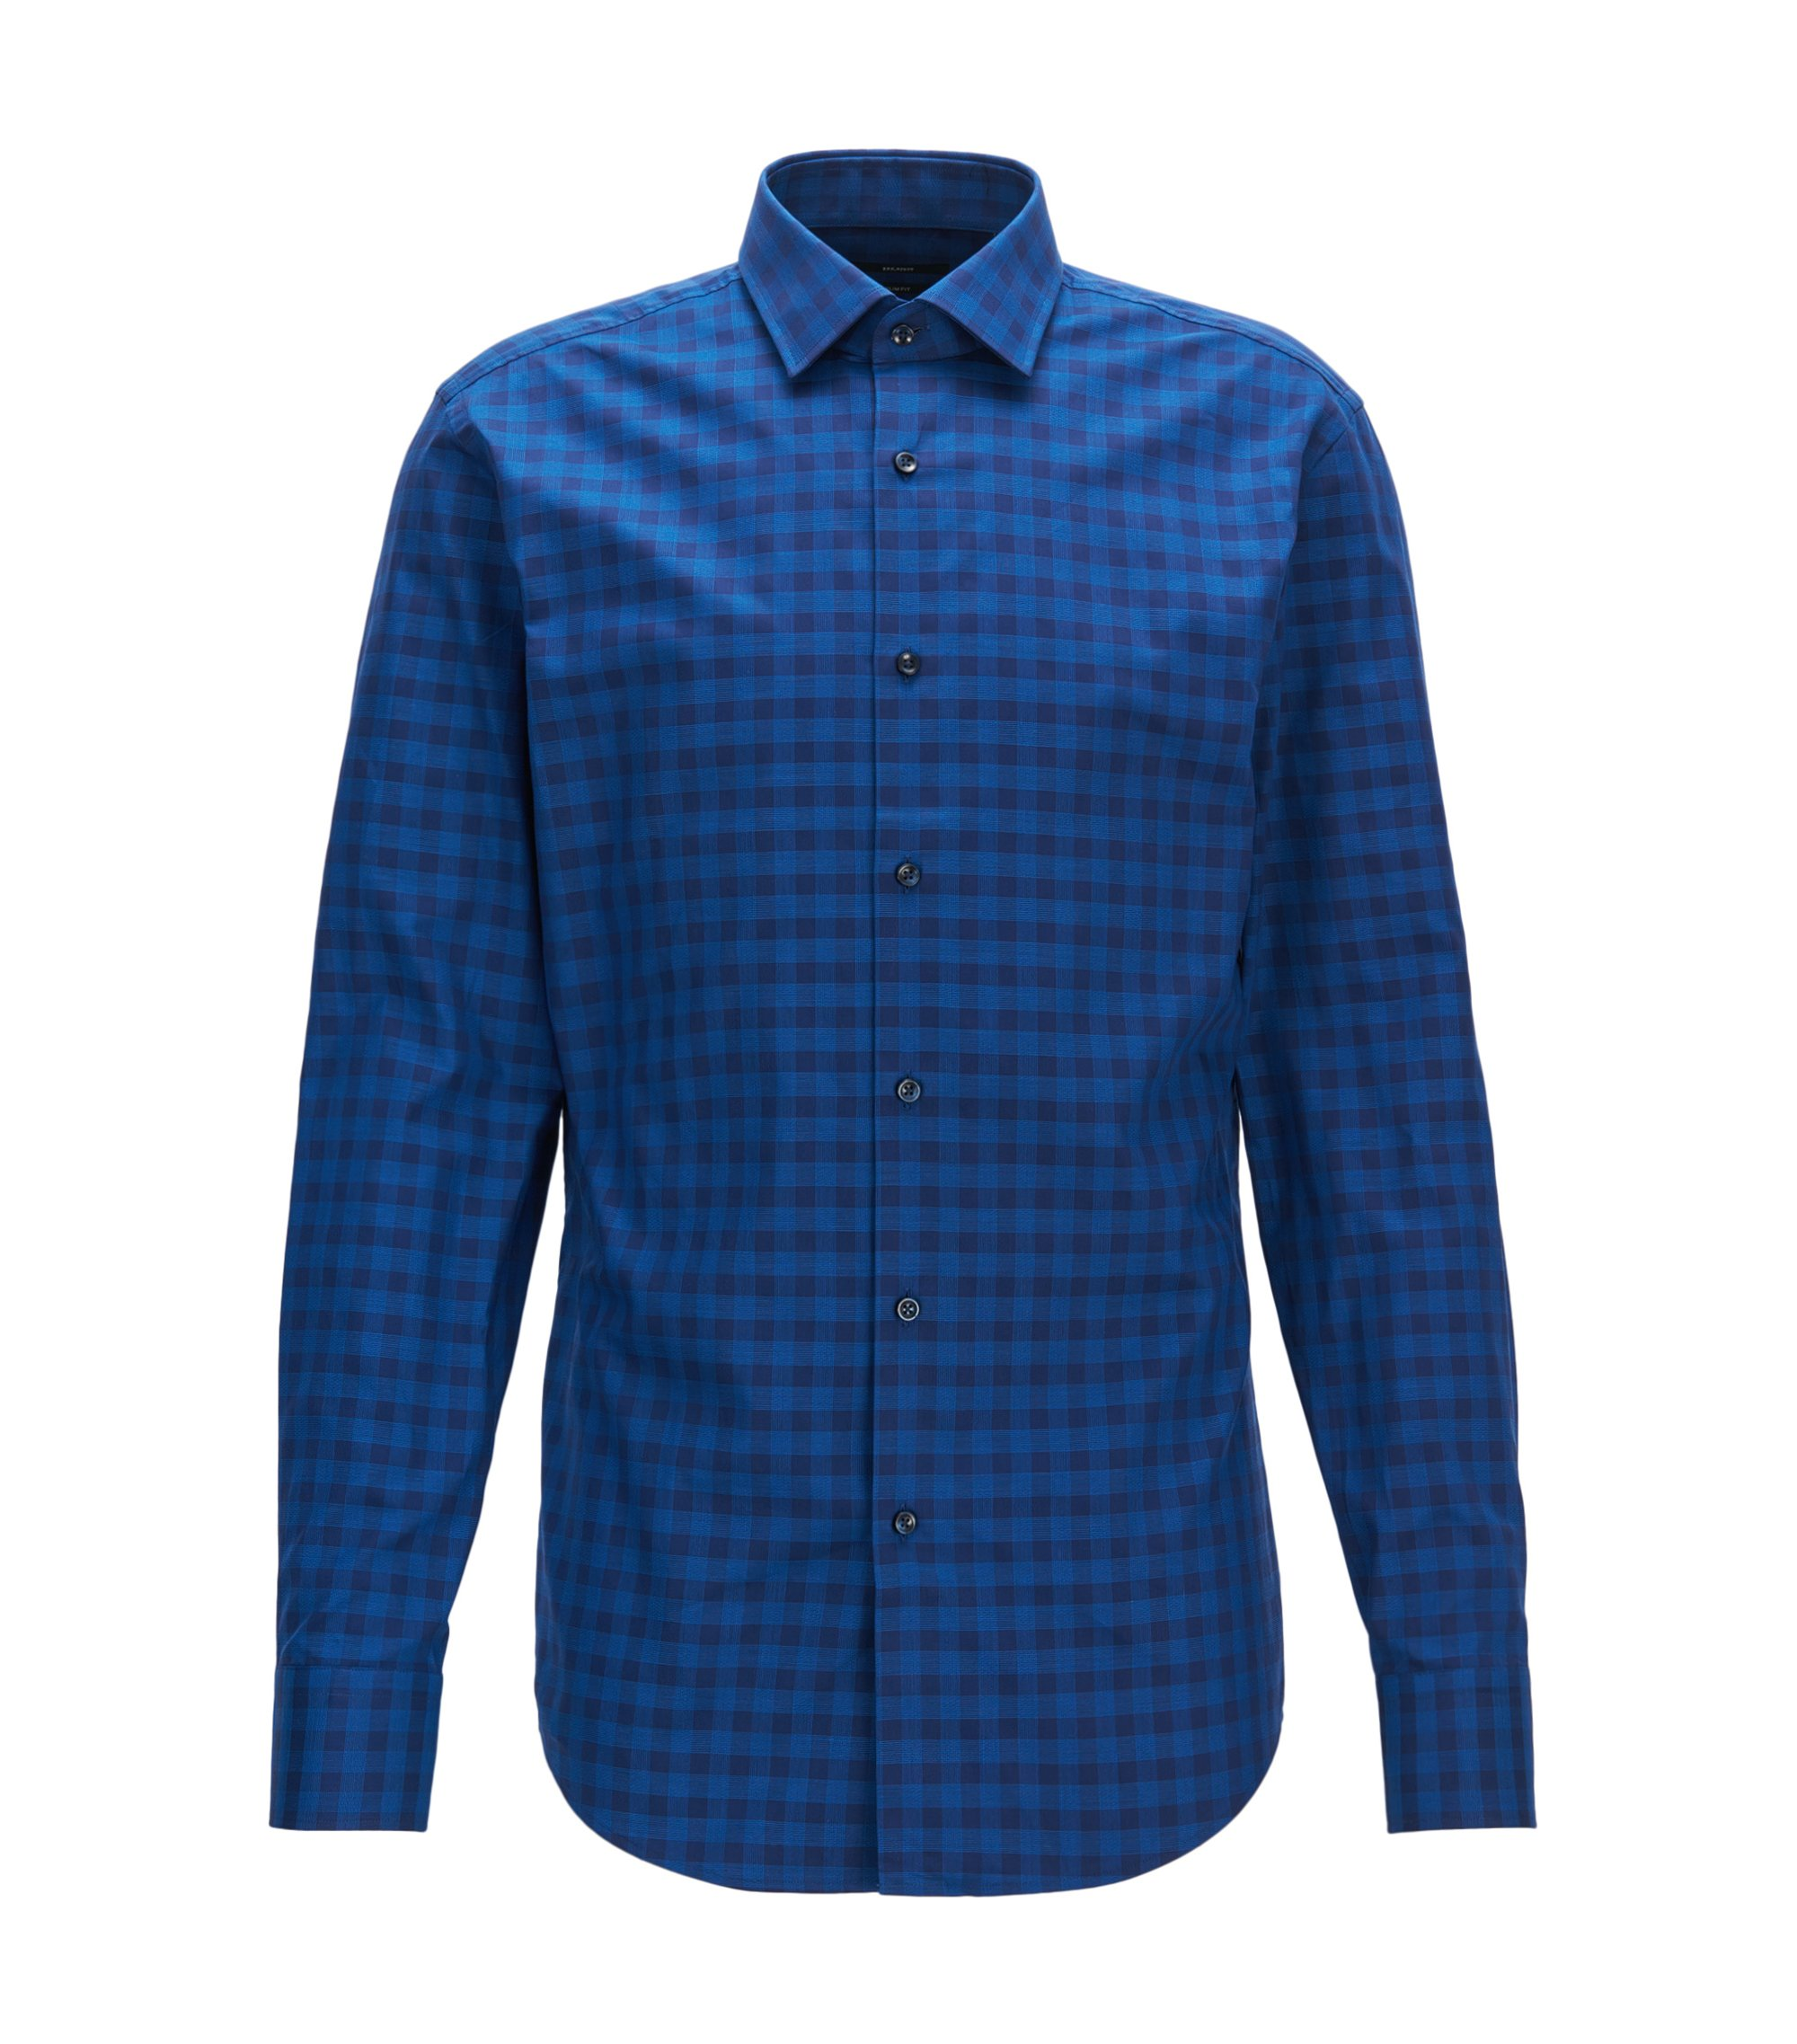 Gingham Cotton Dress Shirt, Slim Fit | Jenno, Blue